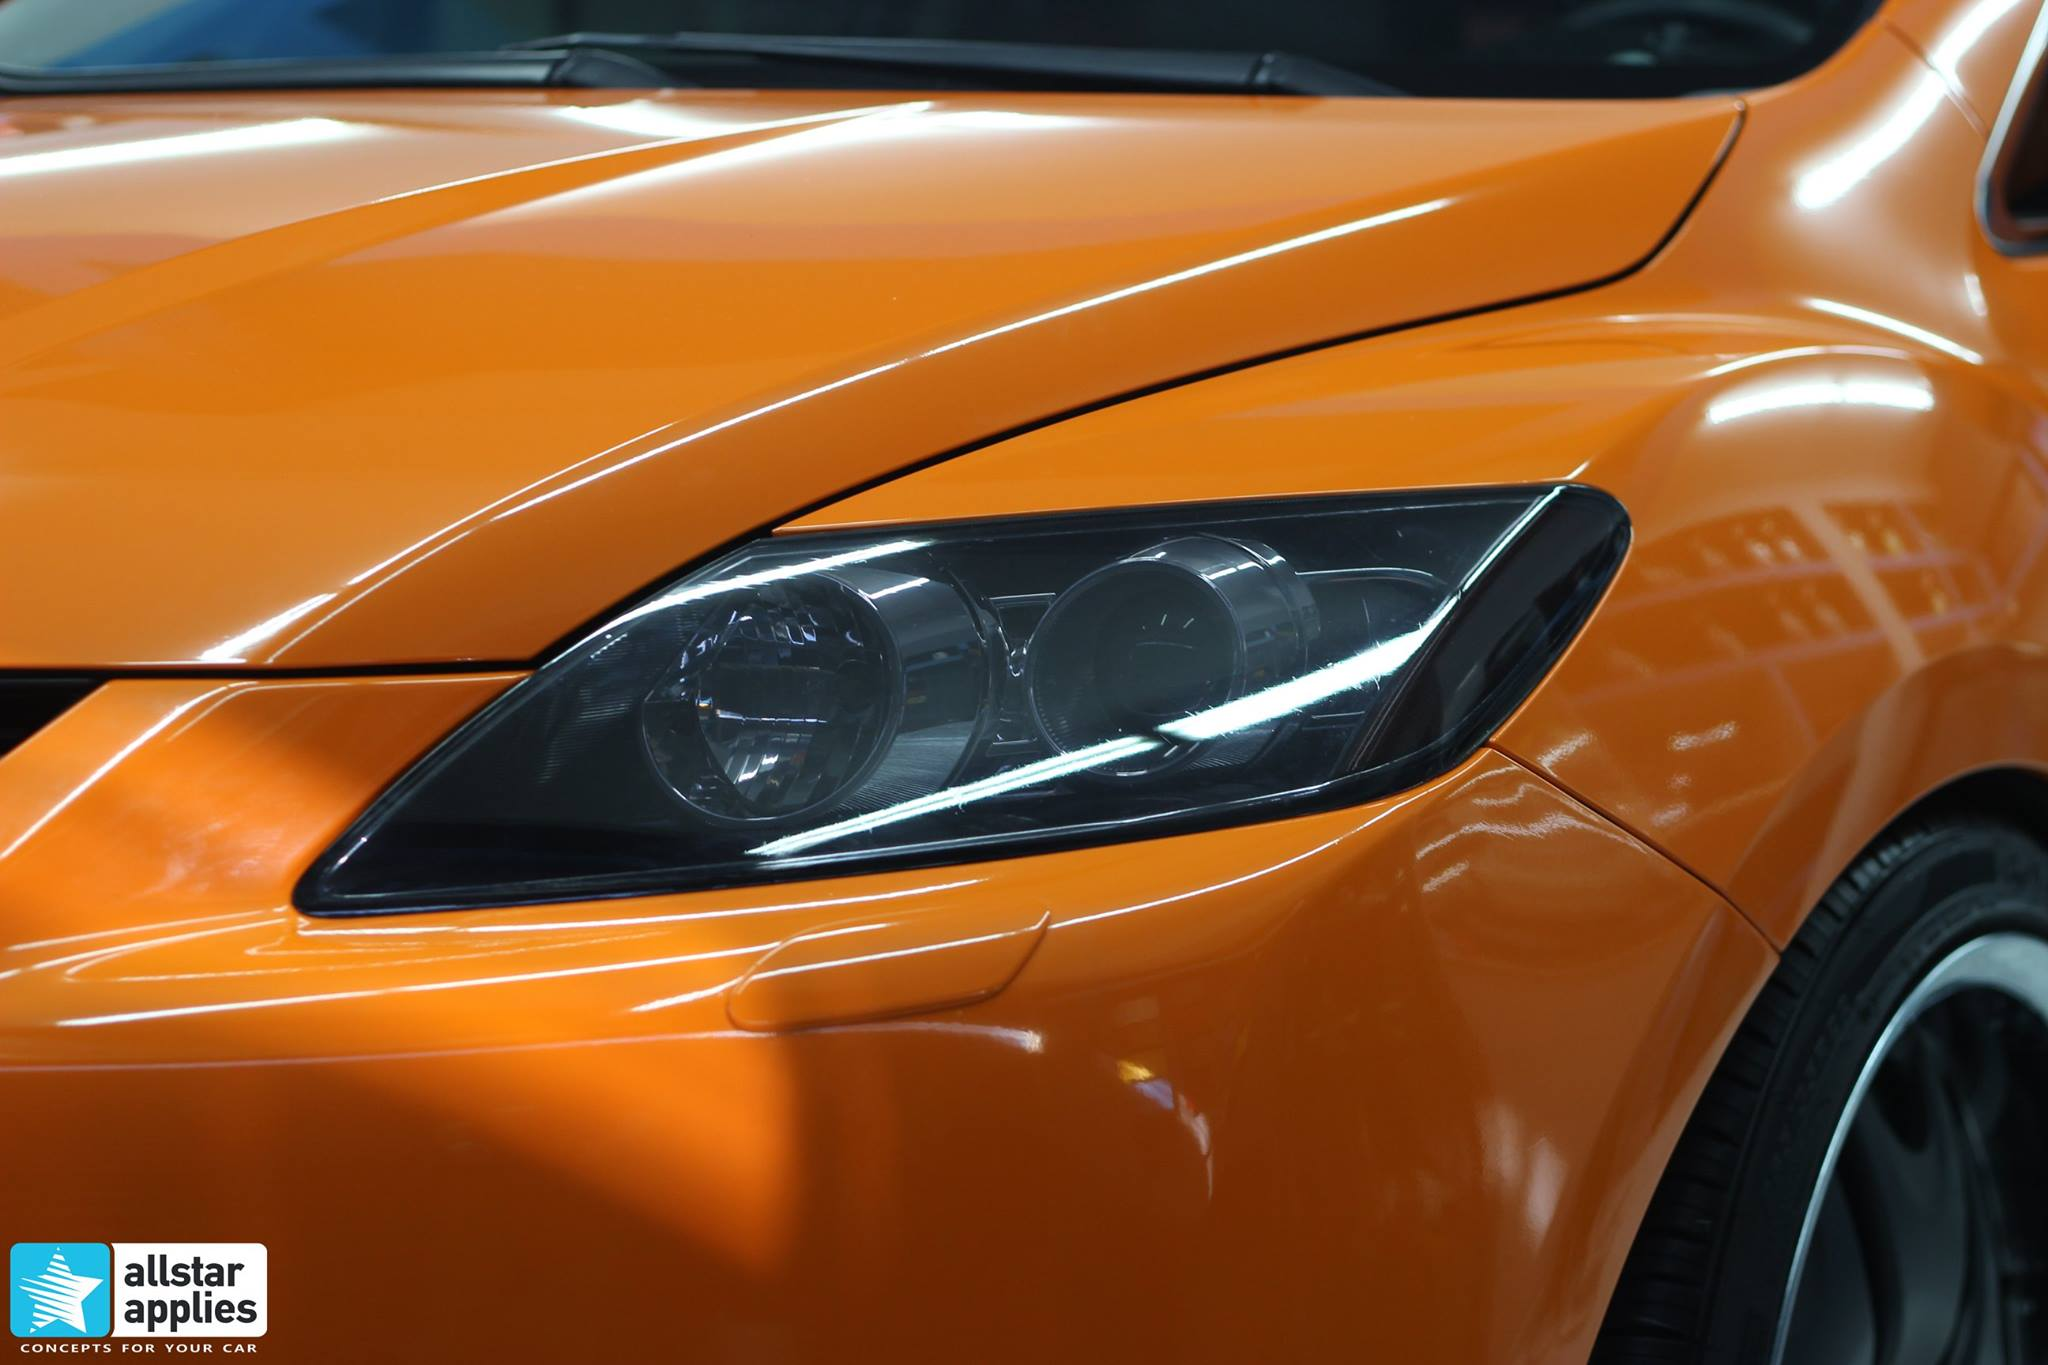 Mazda CX-7 Orange Gloss (9)